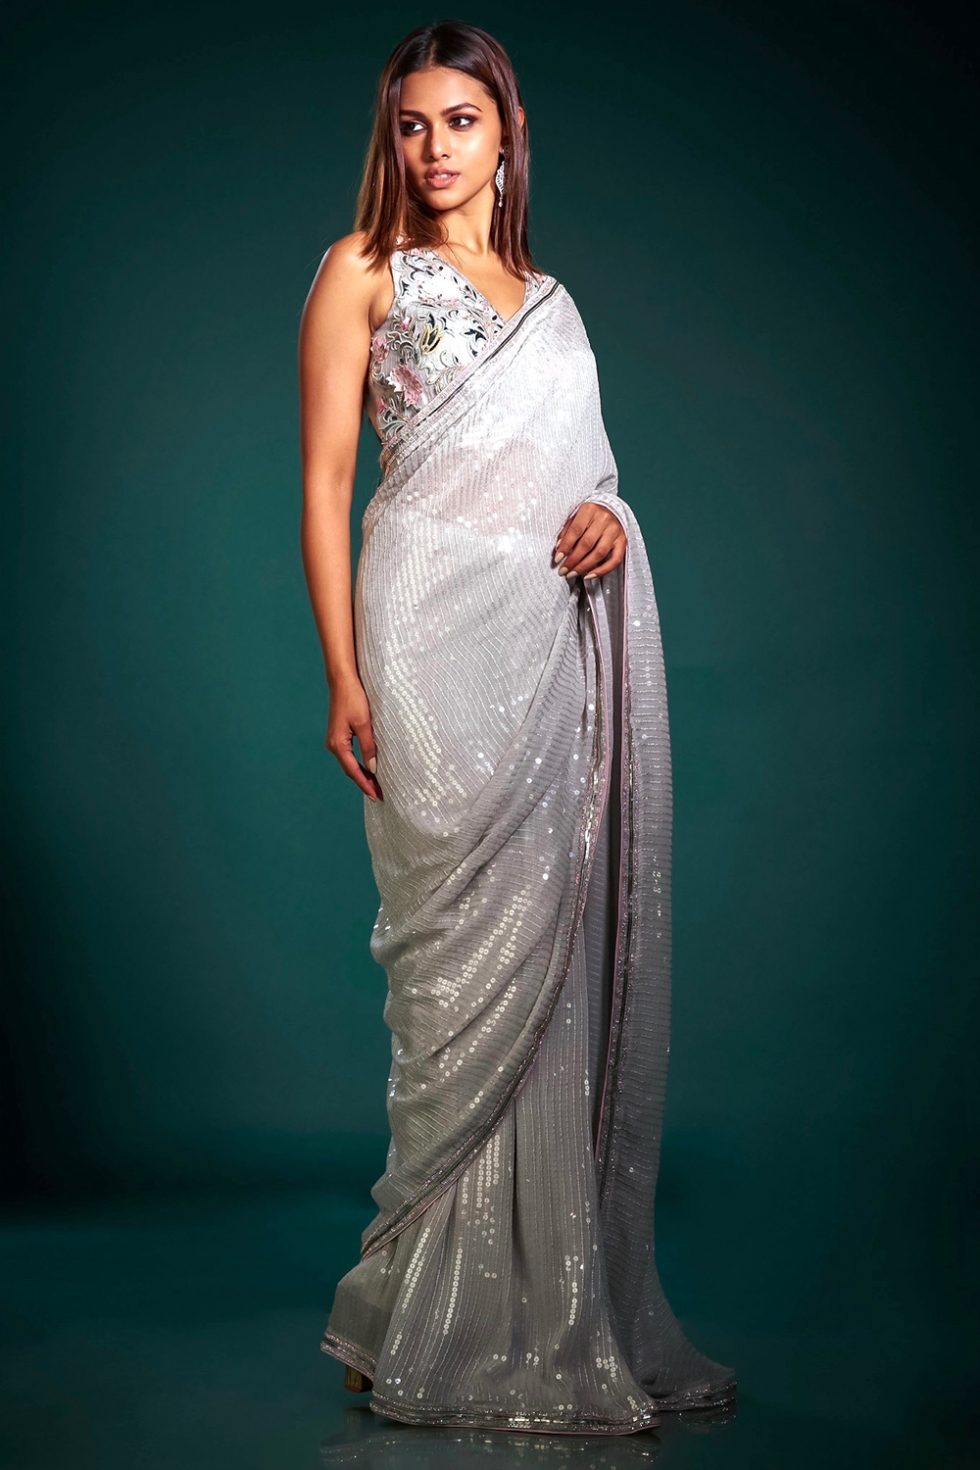 Steel grey classic sequin saree paired with a matching blouse with contrast coloured embroidery and cutwork.